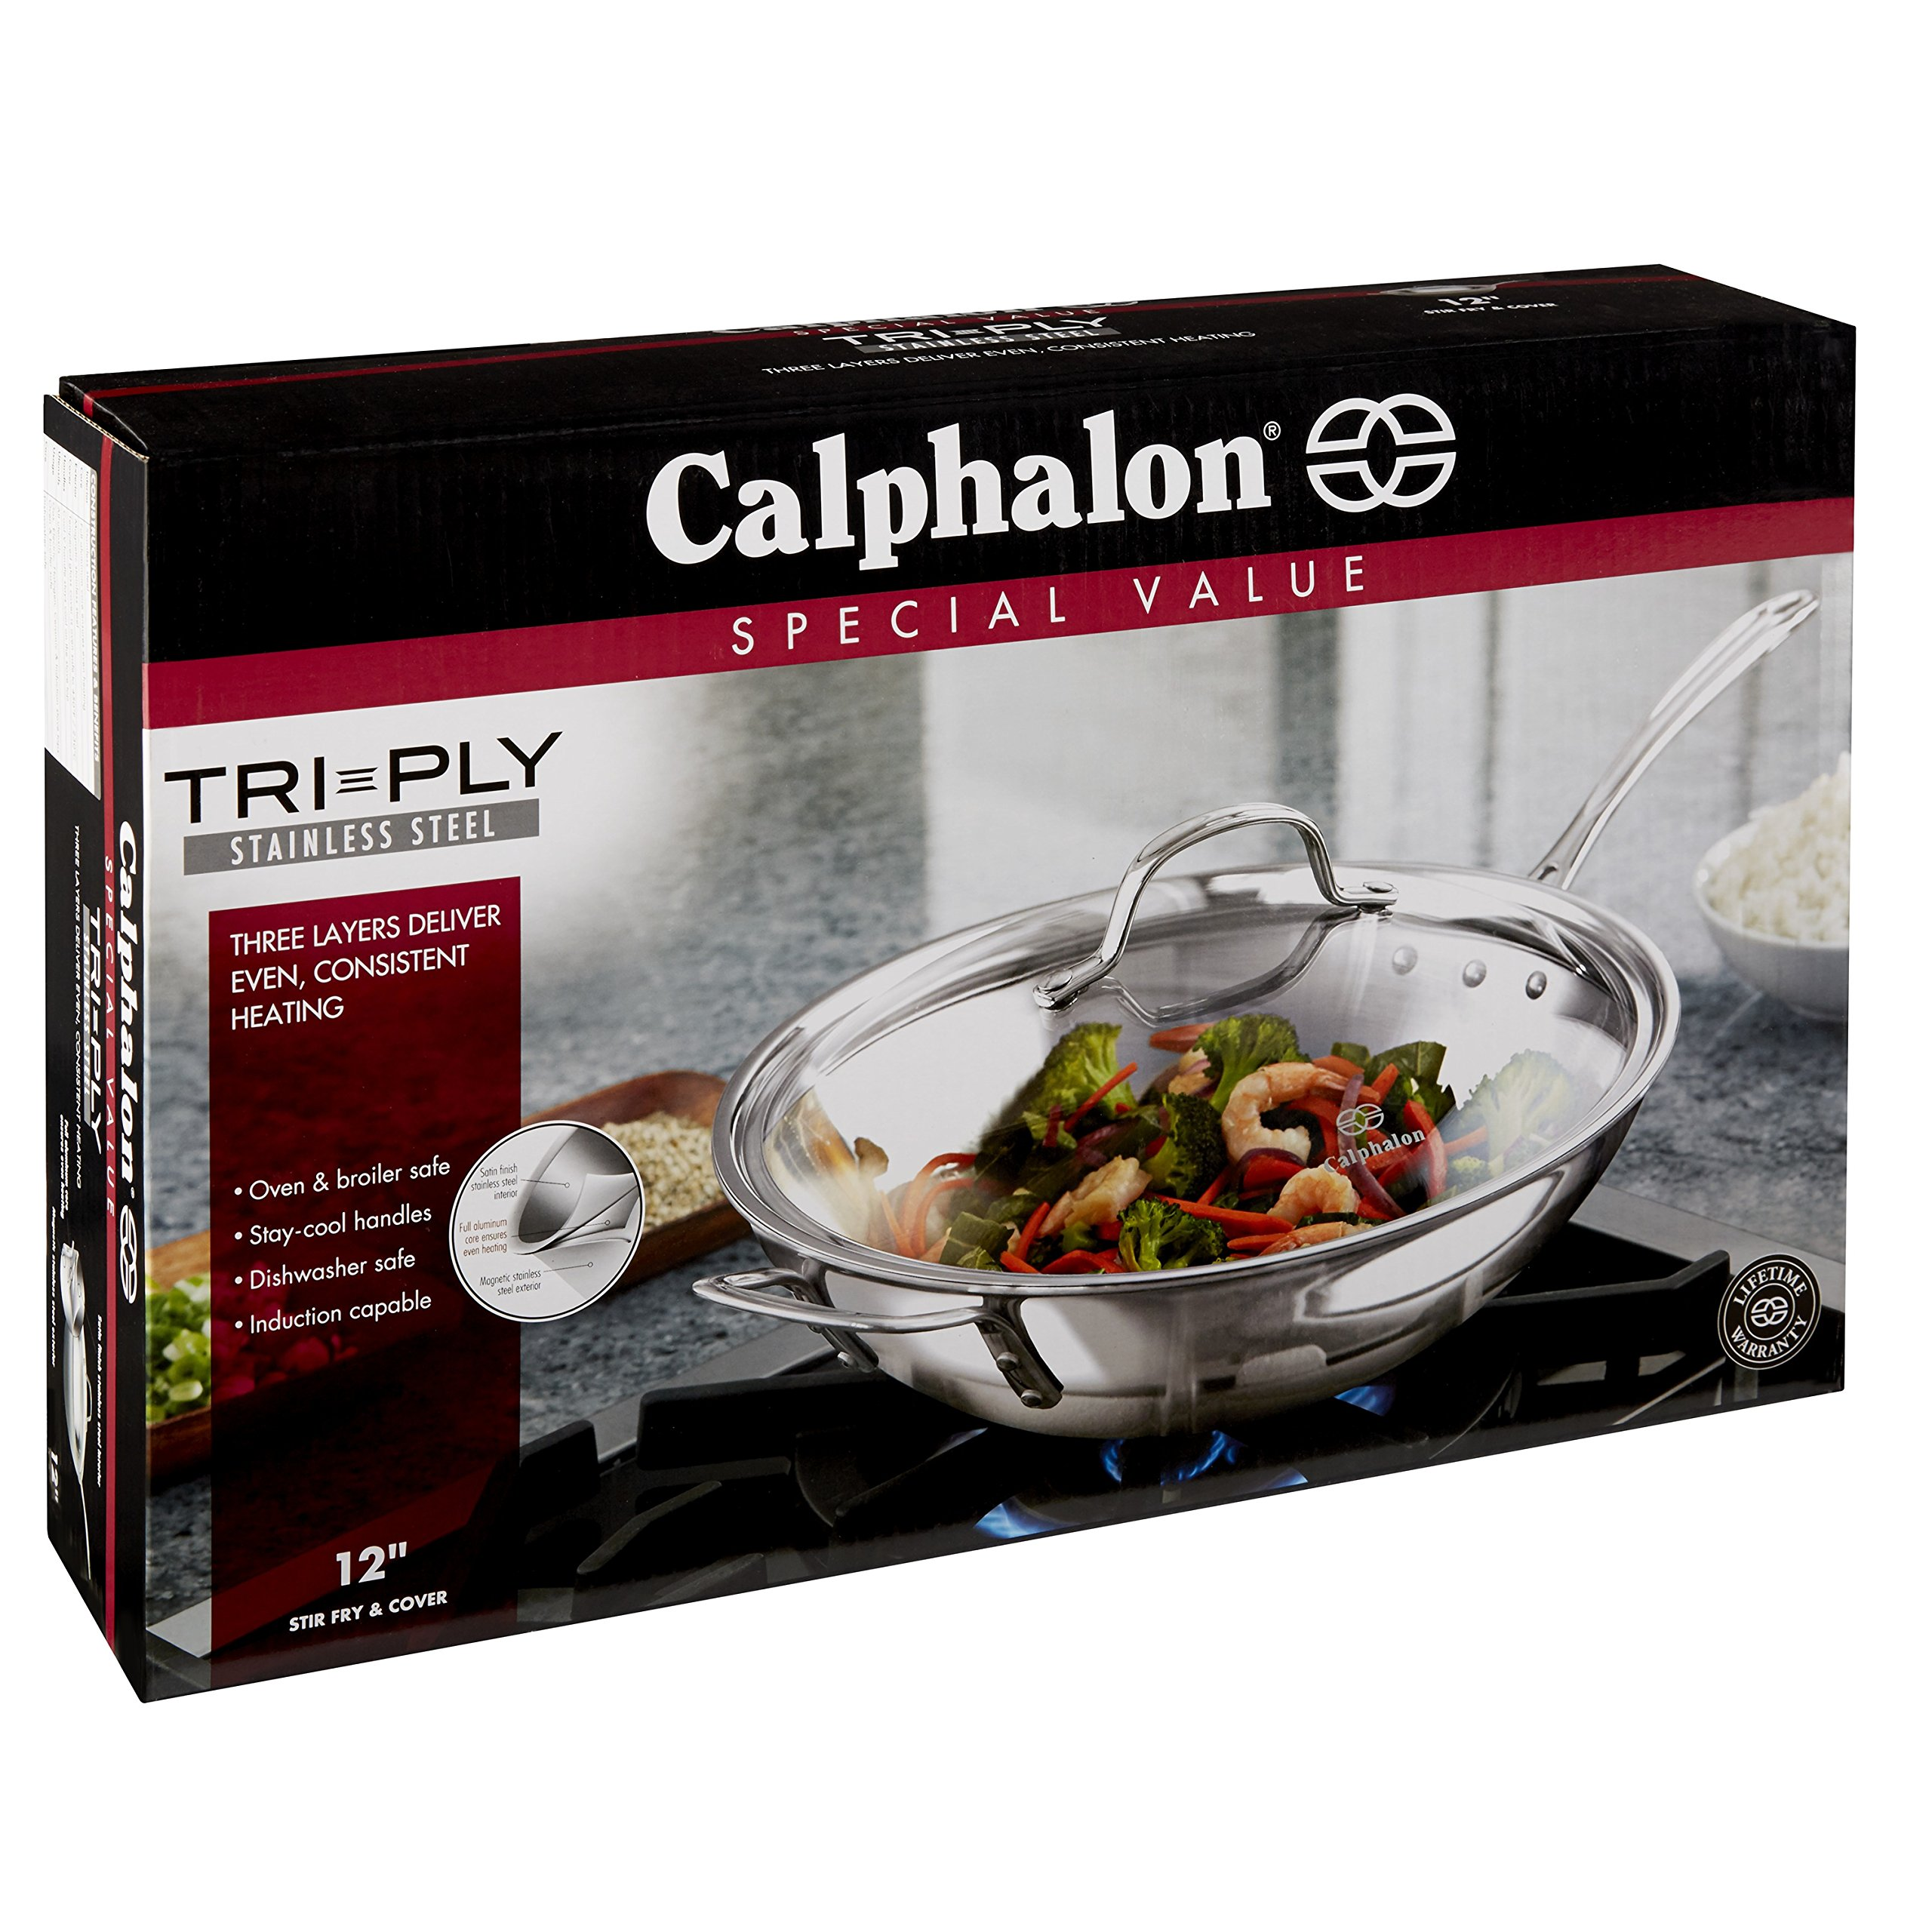 Calphalon Triply Stainless Steel 12-Inch Wok Stir Fry Pan with Cover by Calphalon (Image #7)